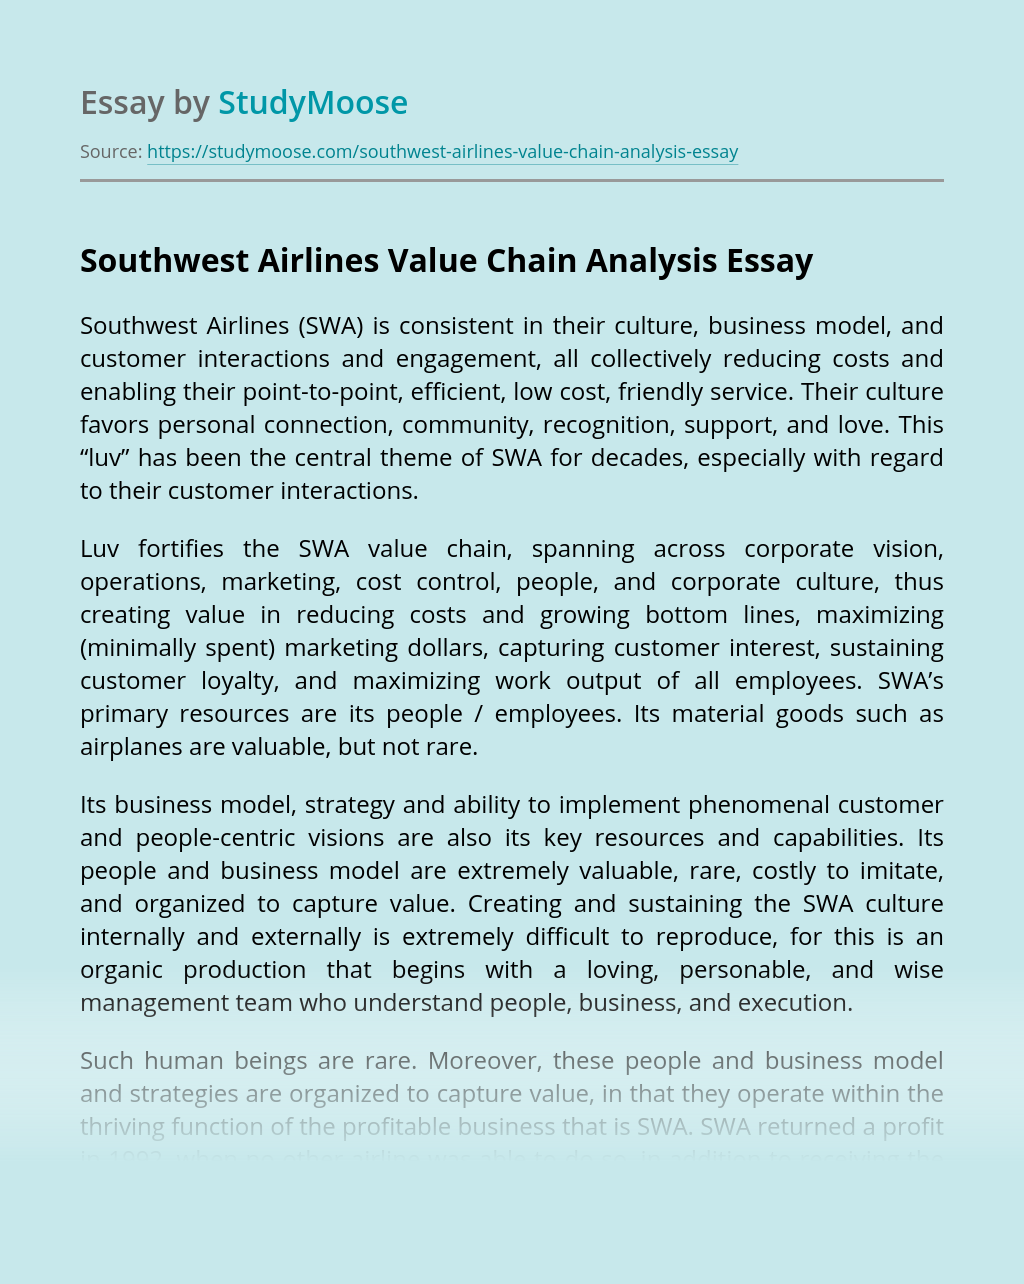 Southwest Airlines Value Chain Analysis